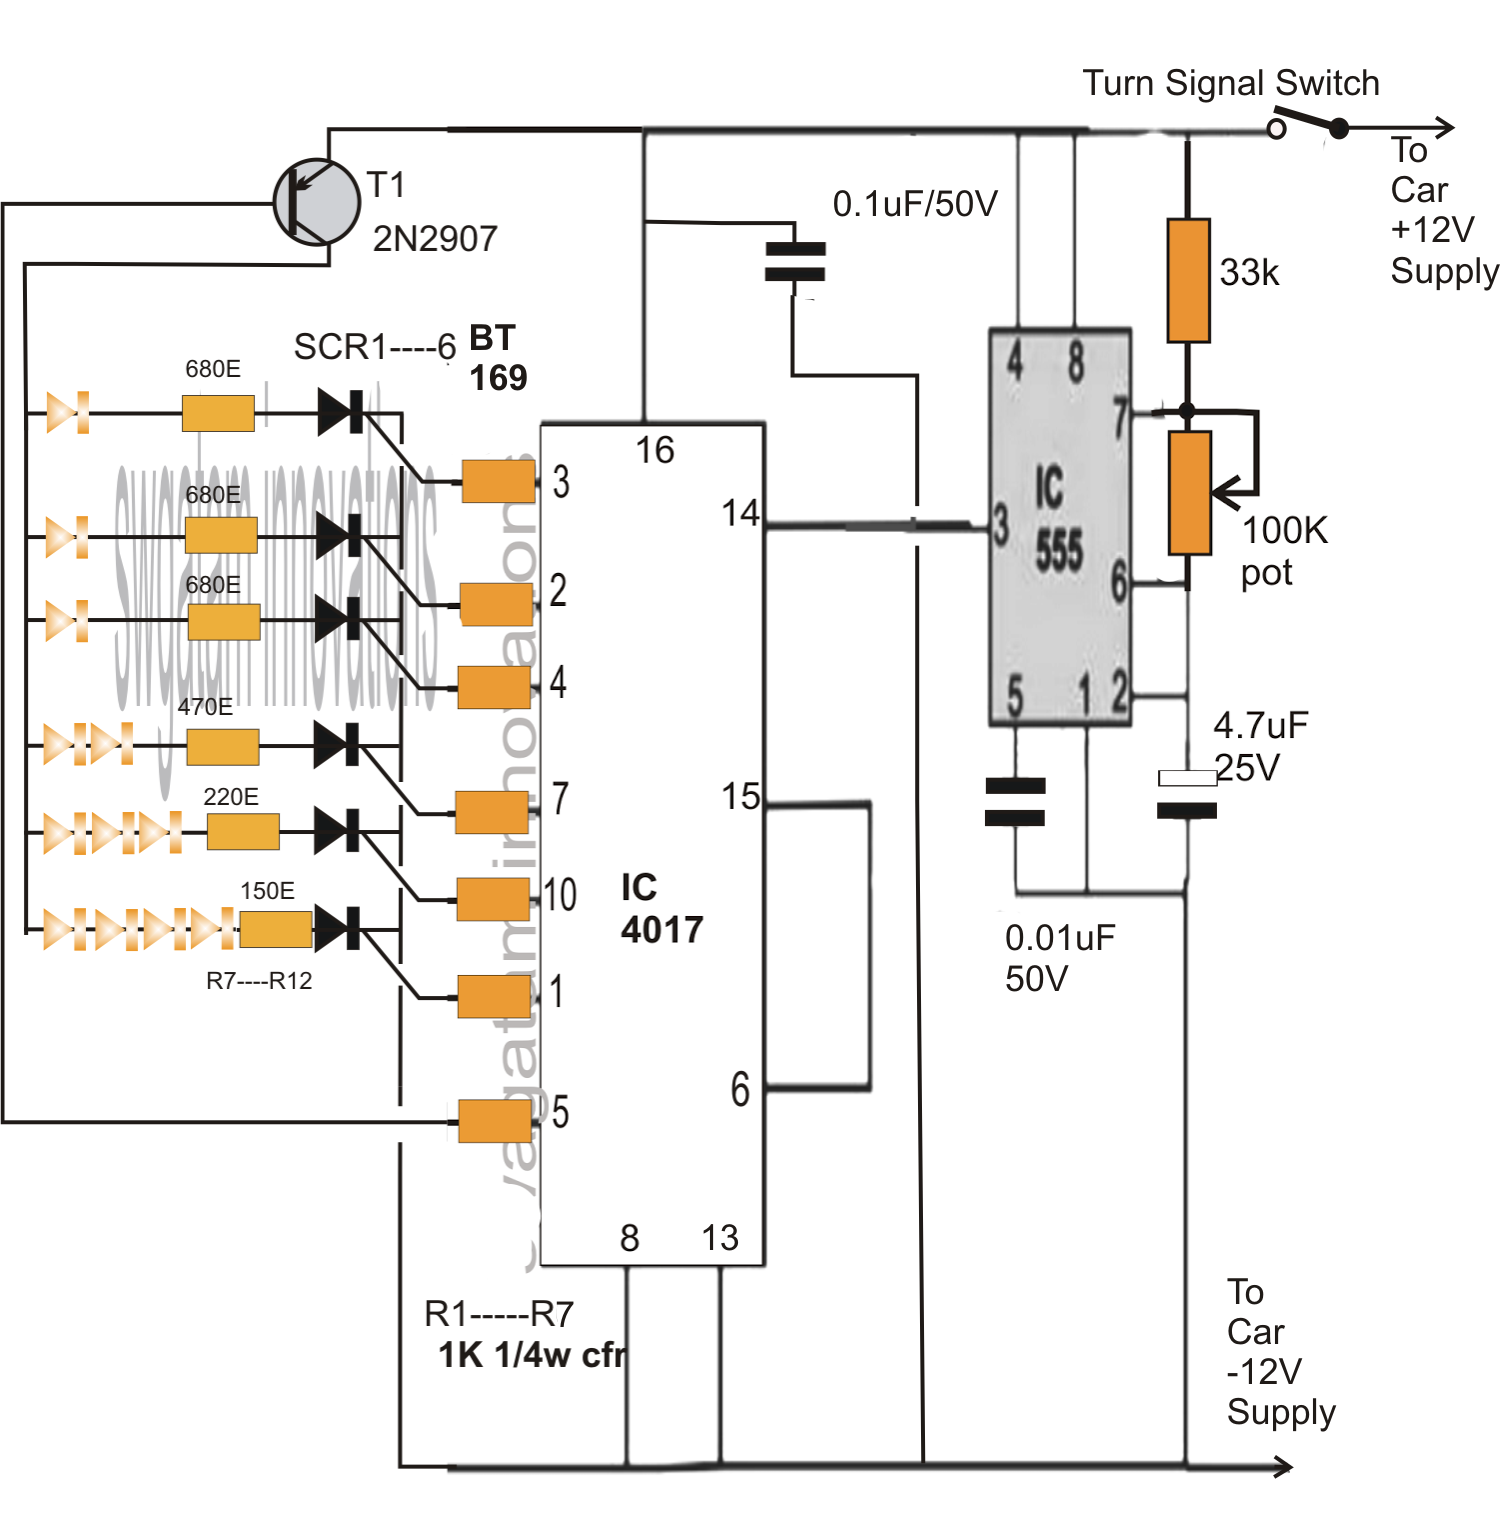 hight resolution of sequential bar graph turn light indicator circuit for car electronic turn signal flasher circuit turnsignal flasher schematic symbol